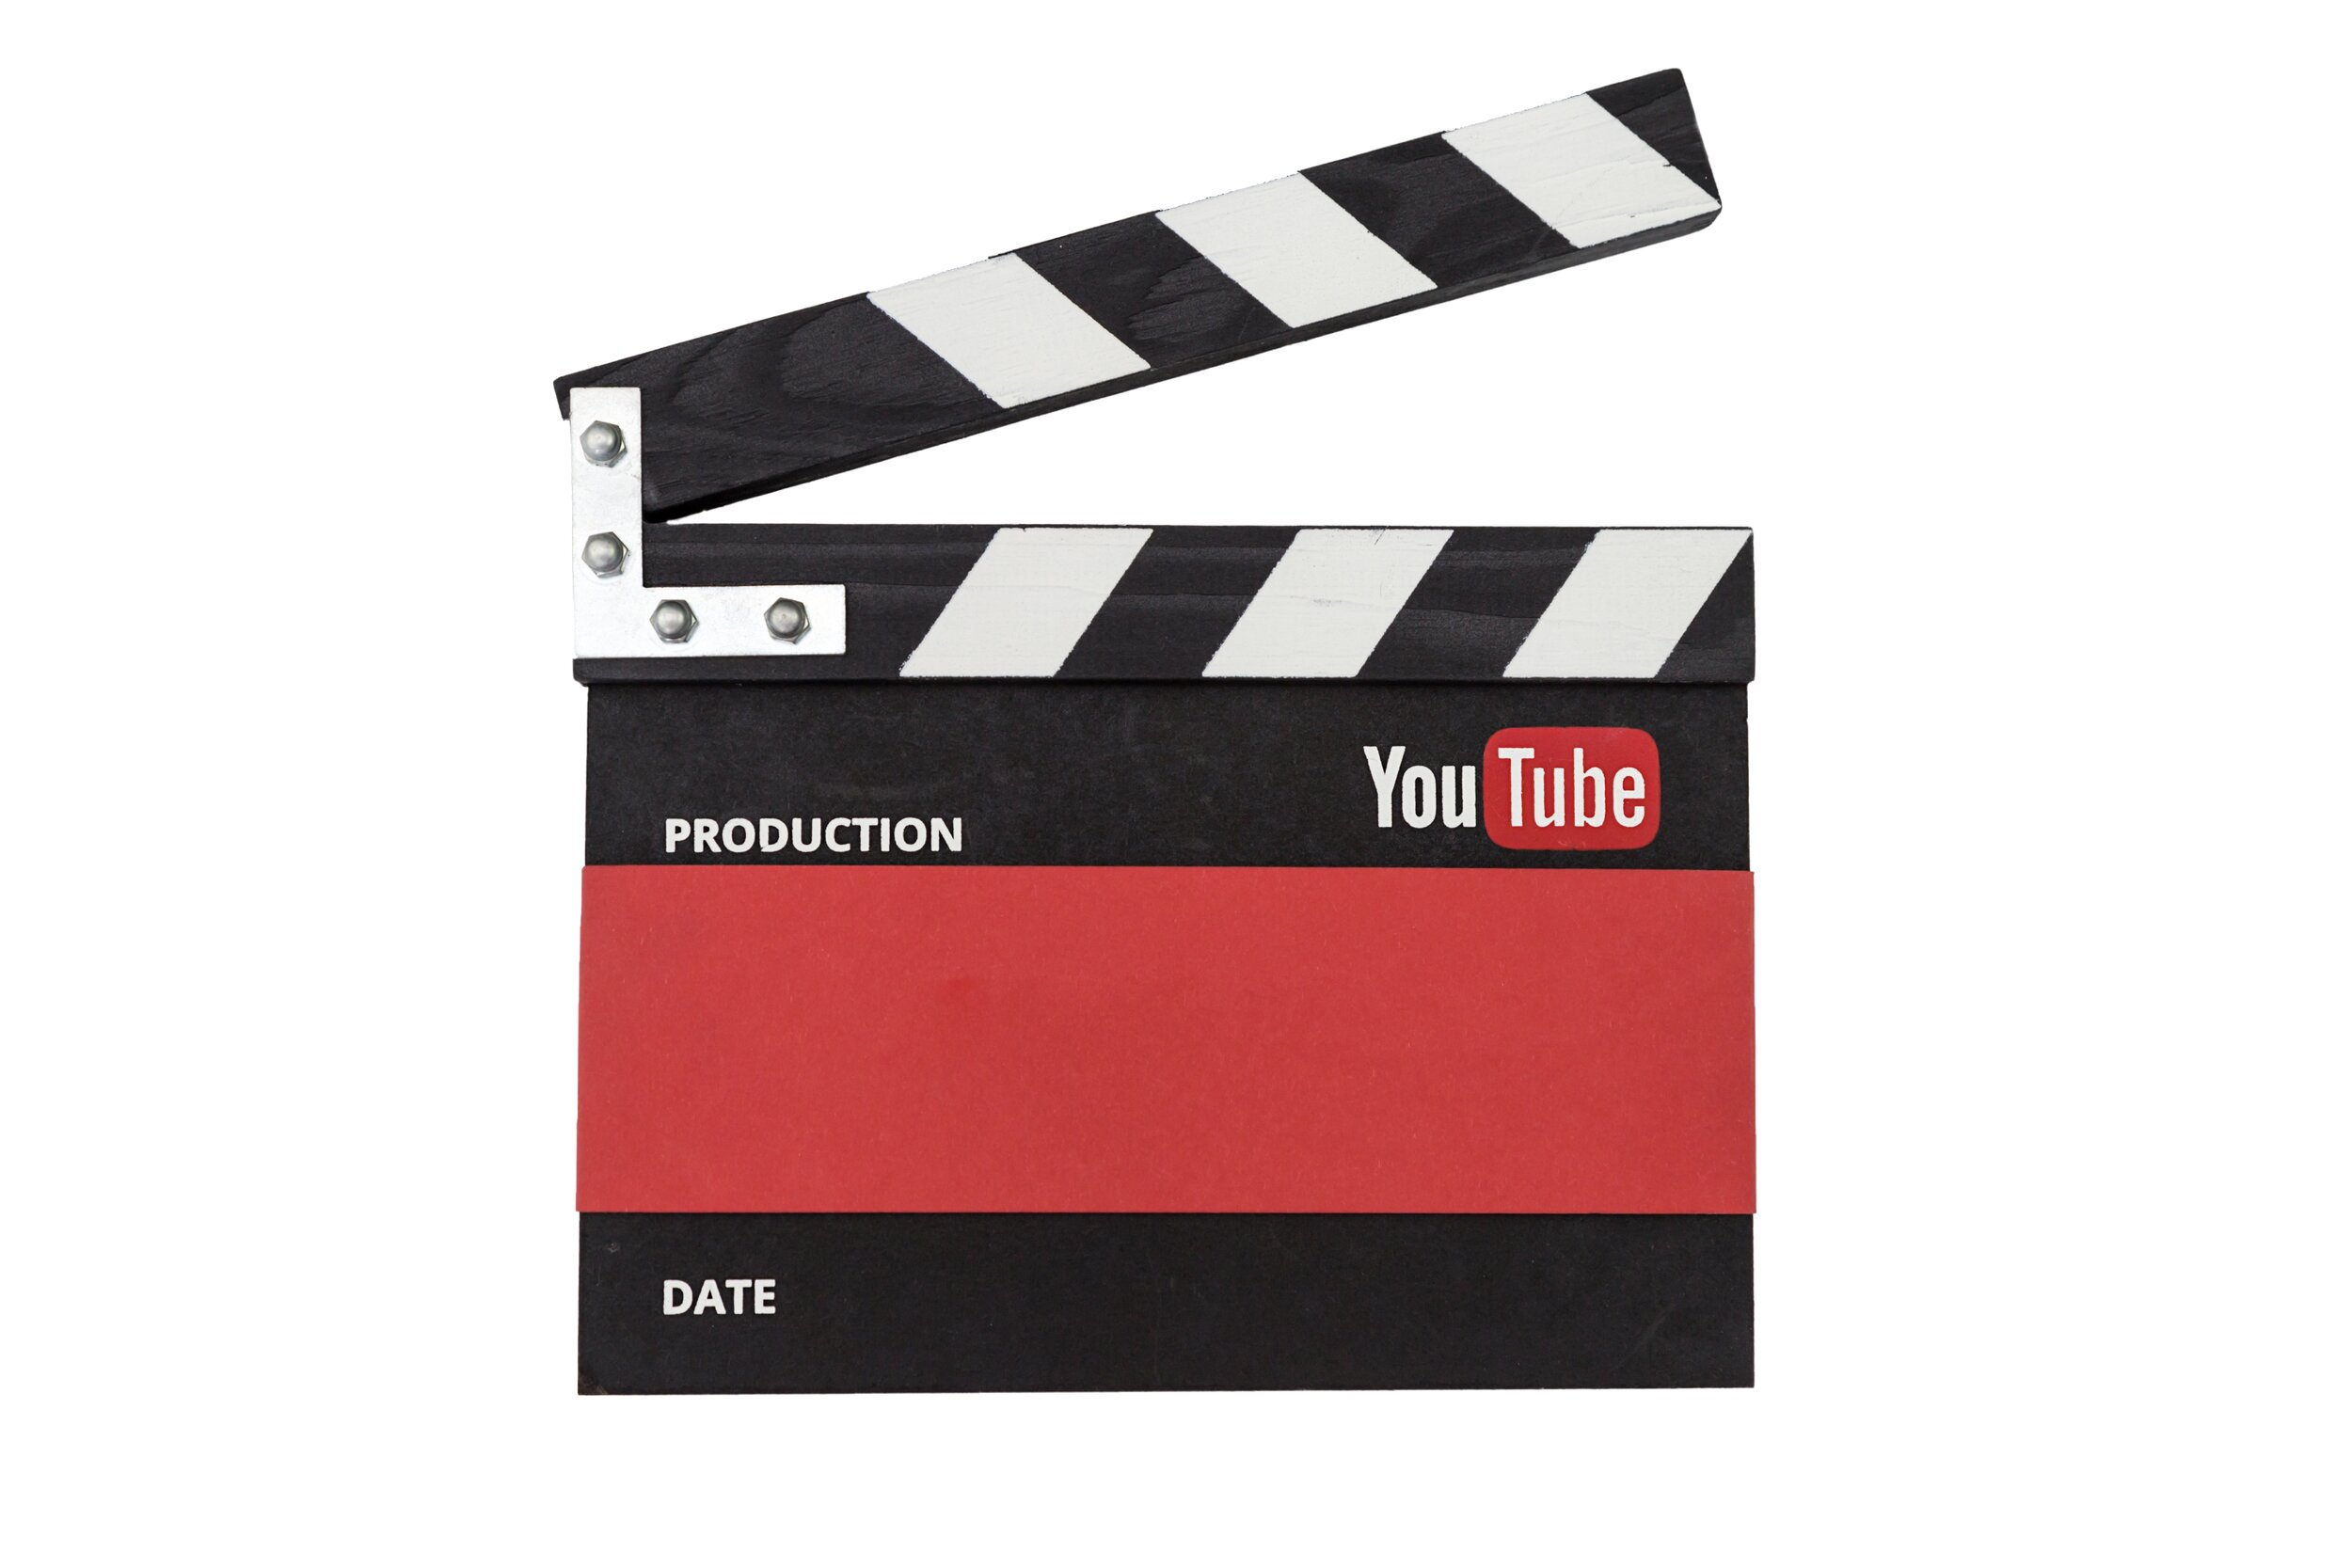 youtube-clapper-board-on-white-background-entertainment-director-clapboard-cinematography-film-movie_t20_eo1gvv.jpg